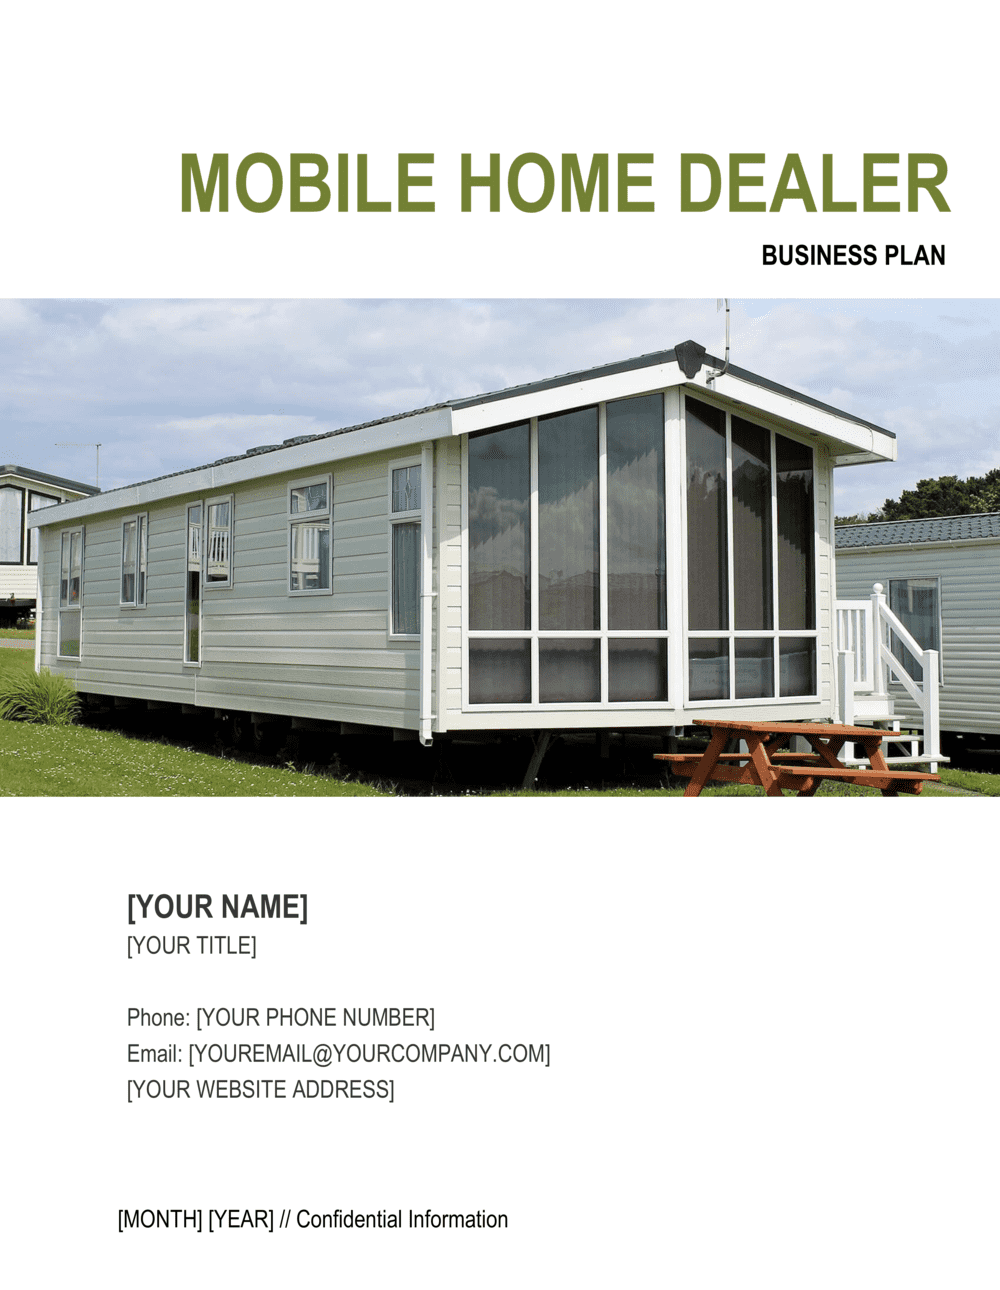 Business-in-a-Box's Mobile Home Dealer Business Plan Template